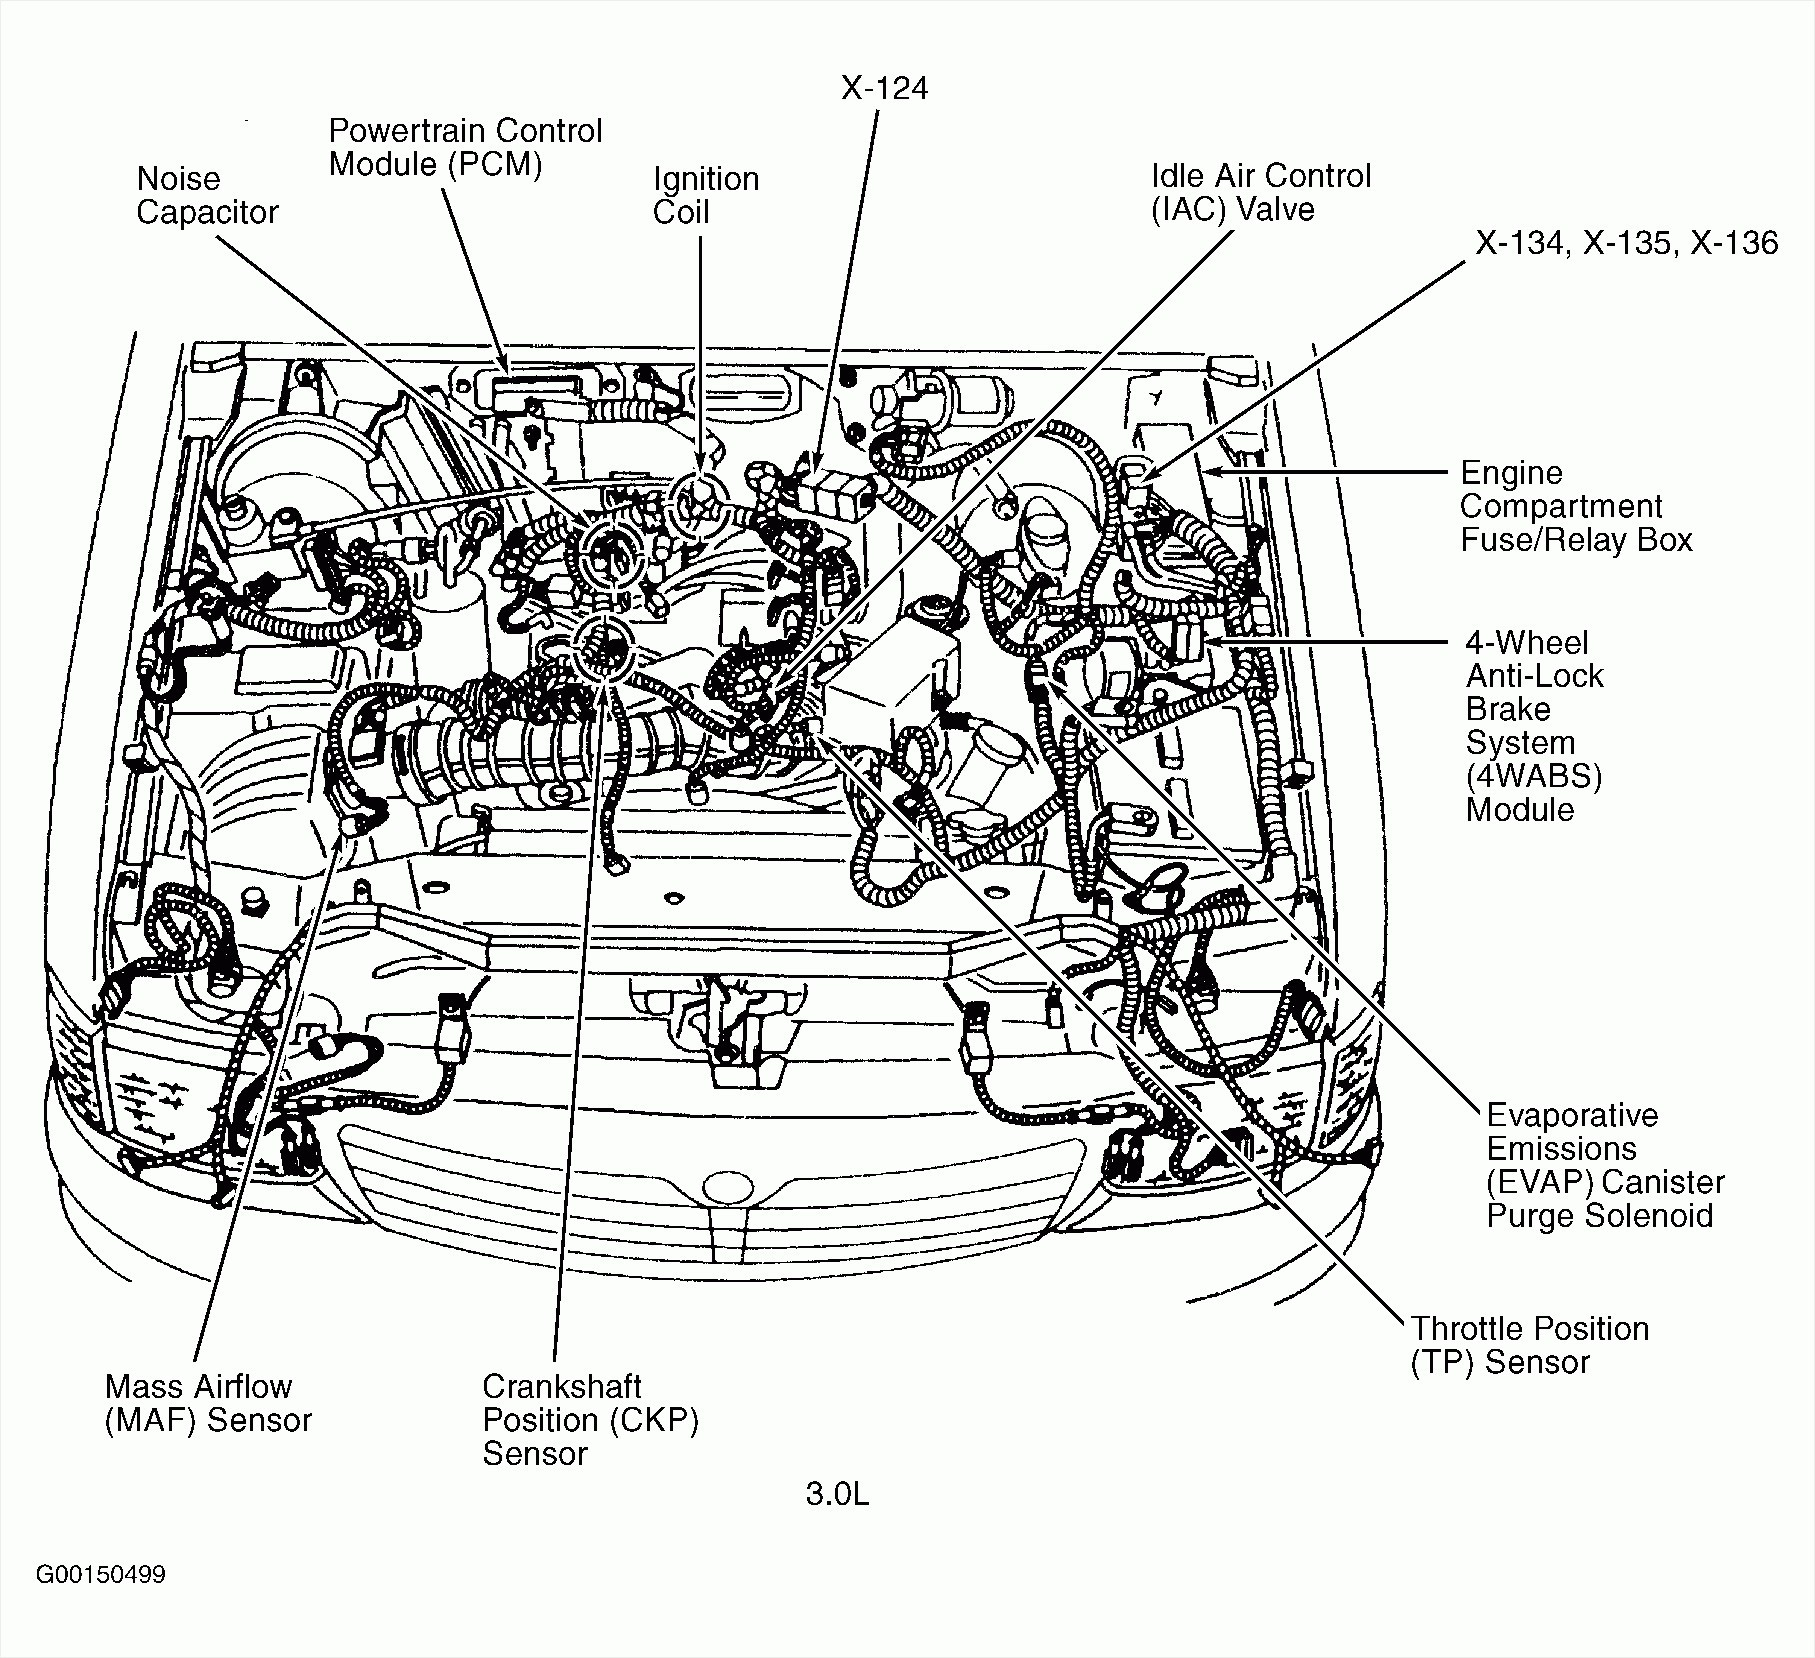 1995 mustang v6 engine diagram